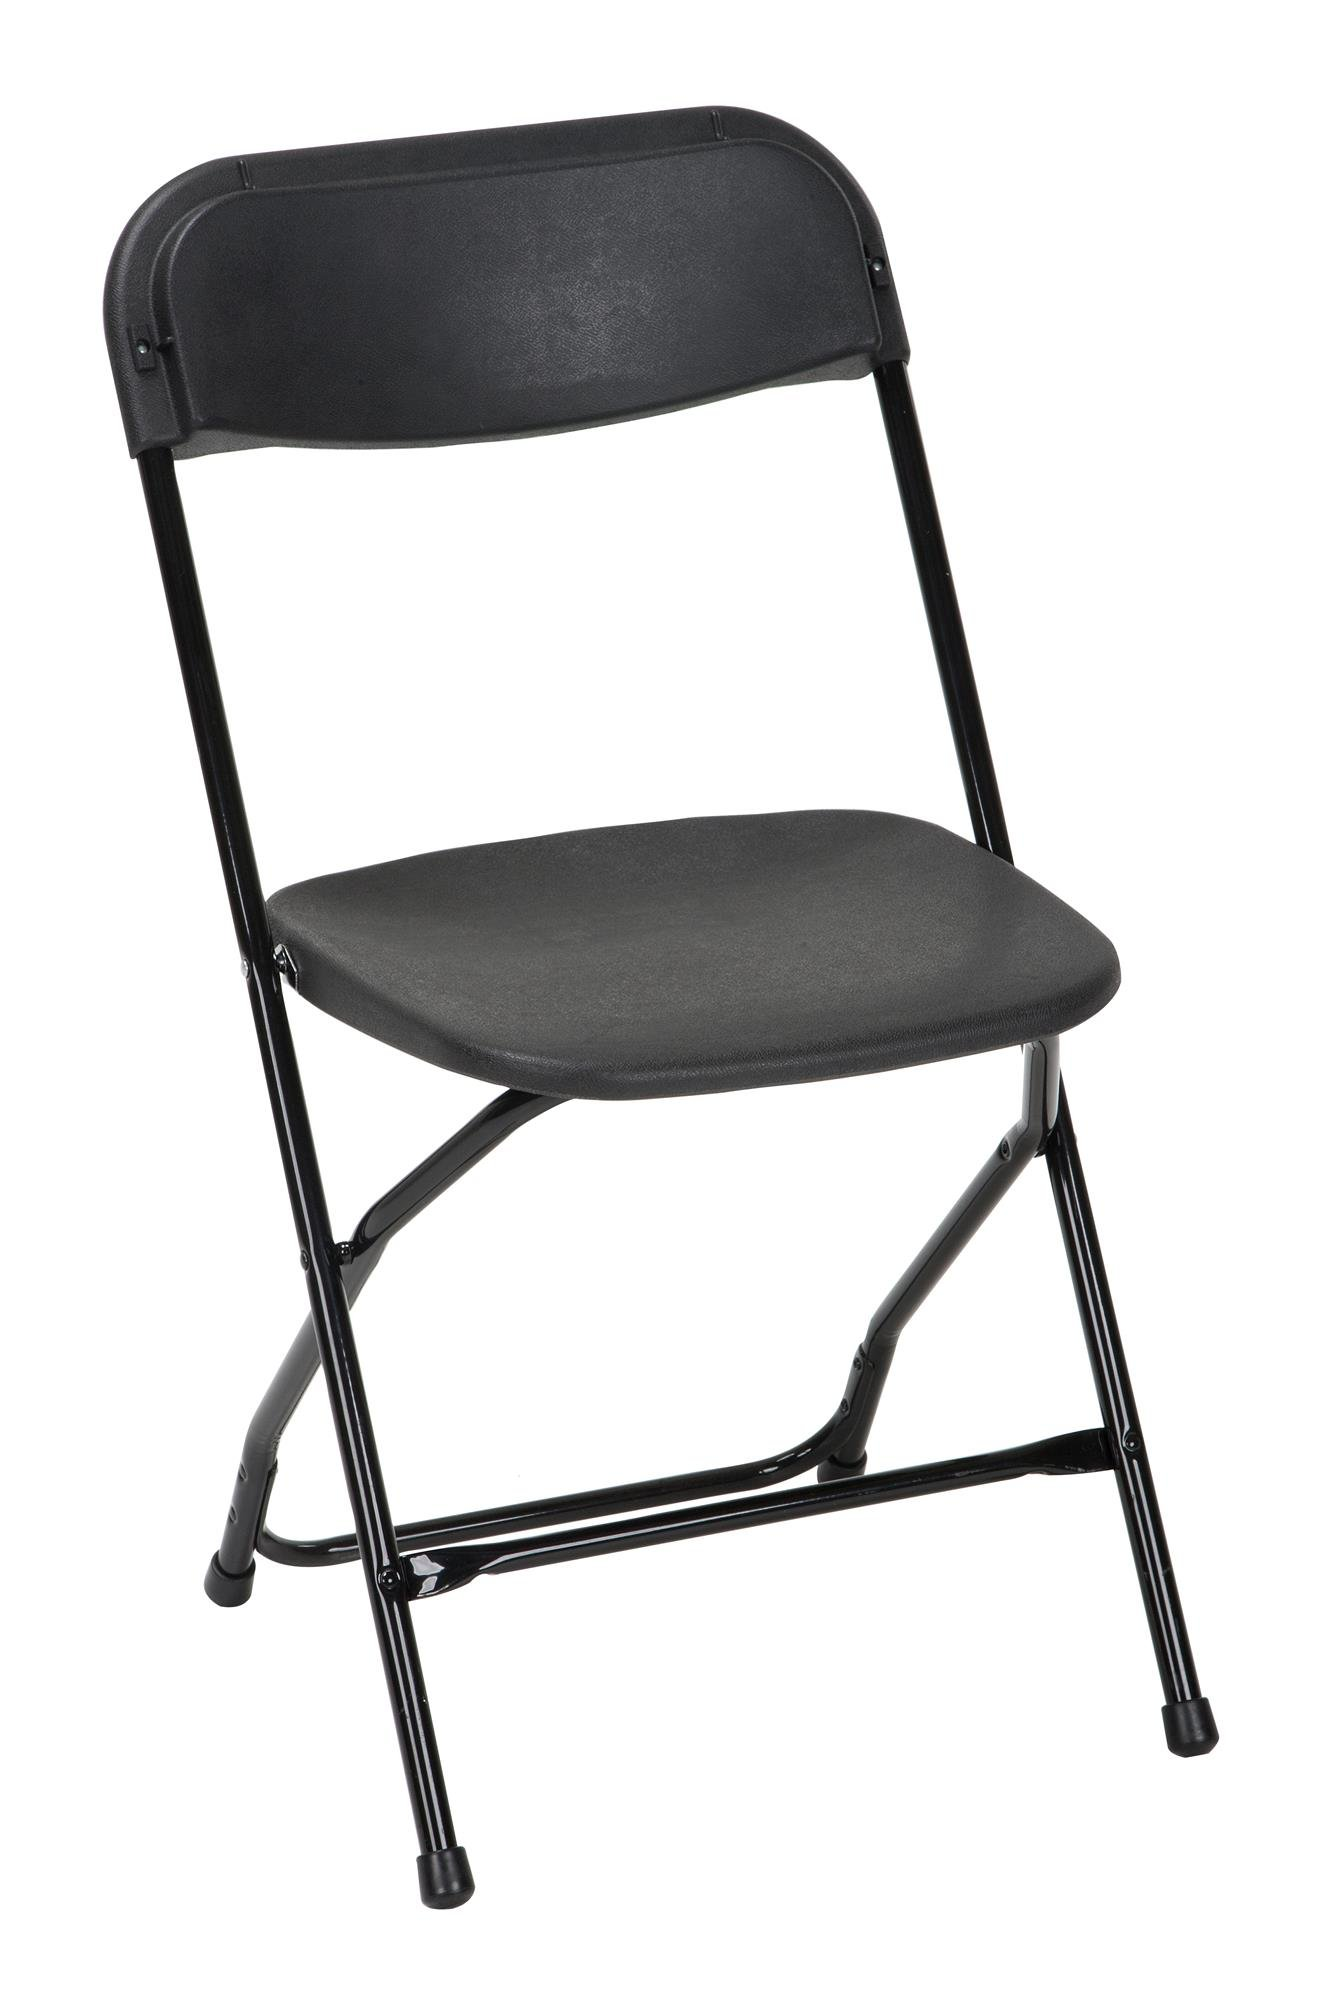 ZOWN Commercial 60540BLK8E Heavy Duty, Injection Mold Banquet Folding Chair, 8-Pack, Black (300 lb. Use Rate)